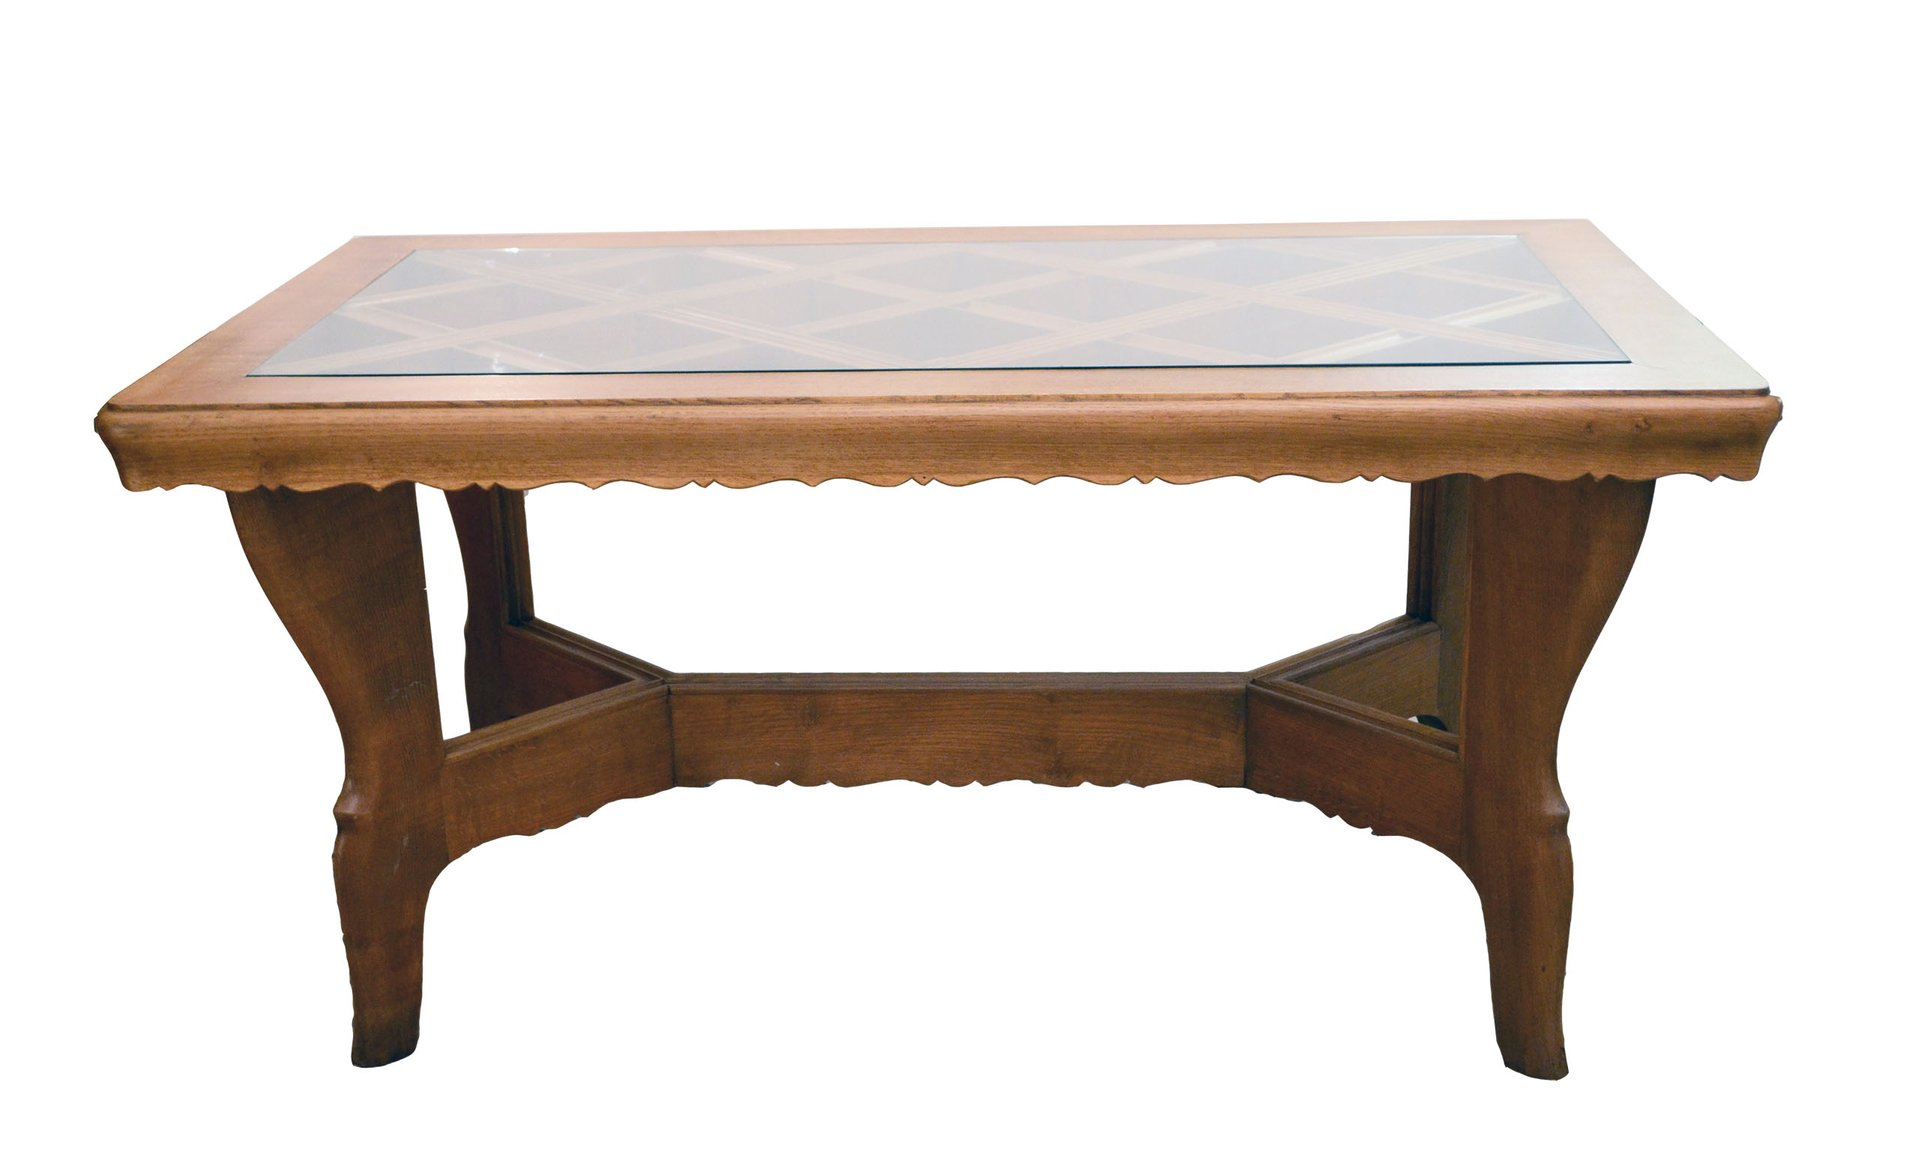 Handmade Solid Oak Table From Atelier Borsani, 1940s For Sale At Pamono